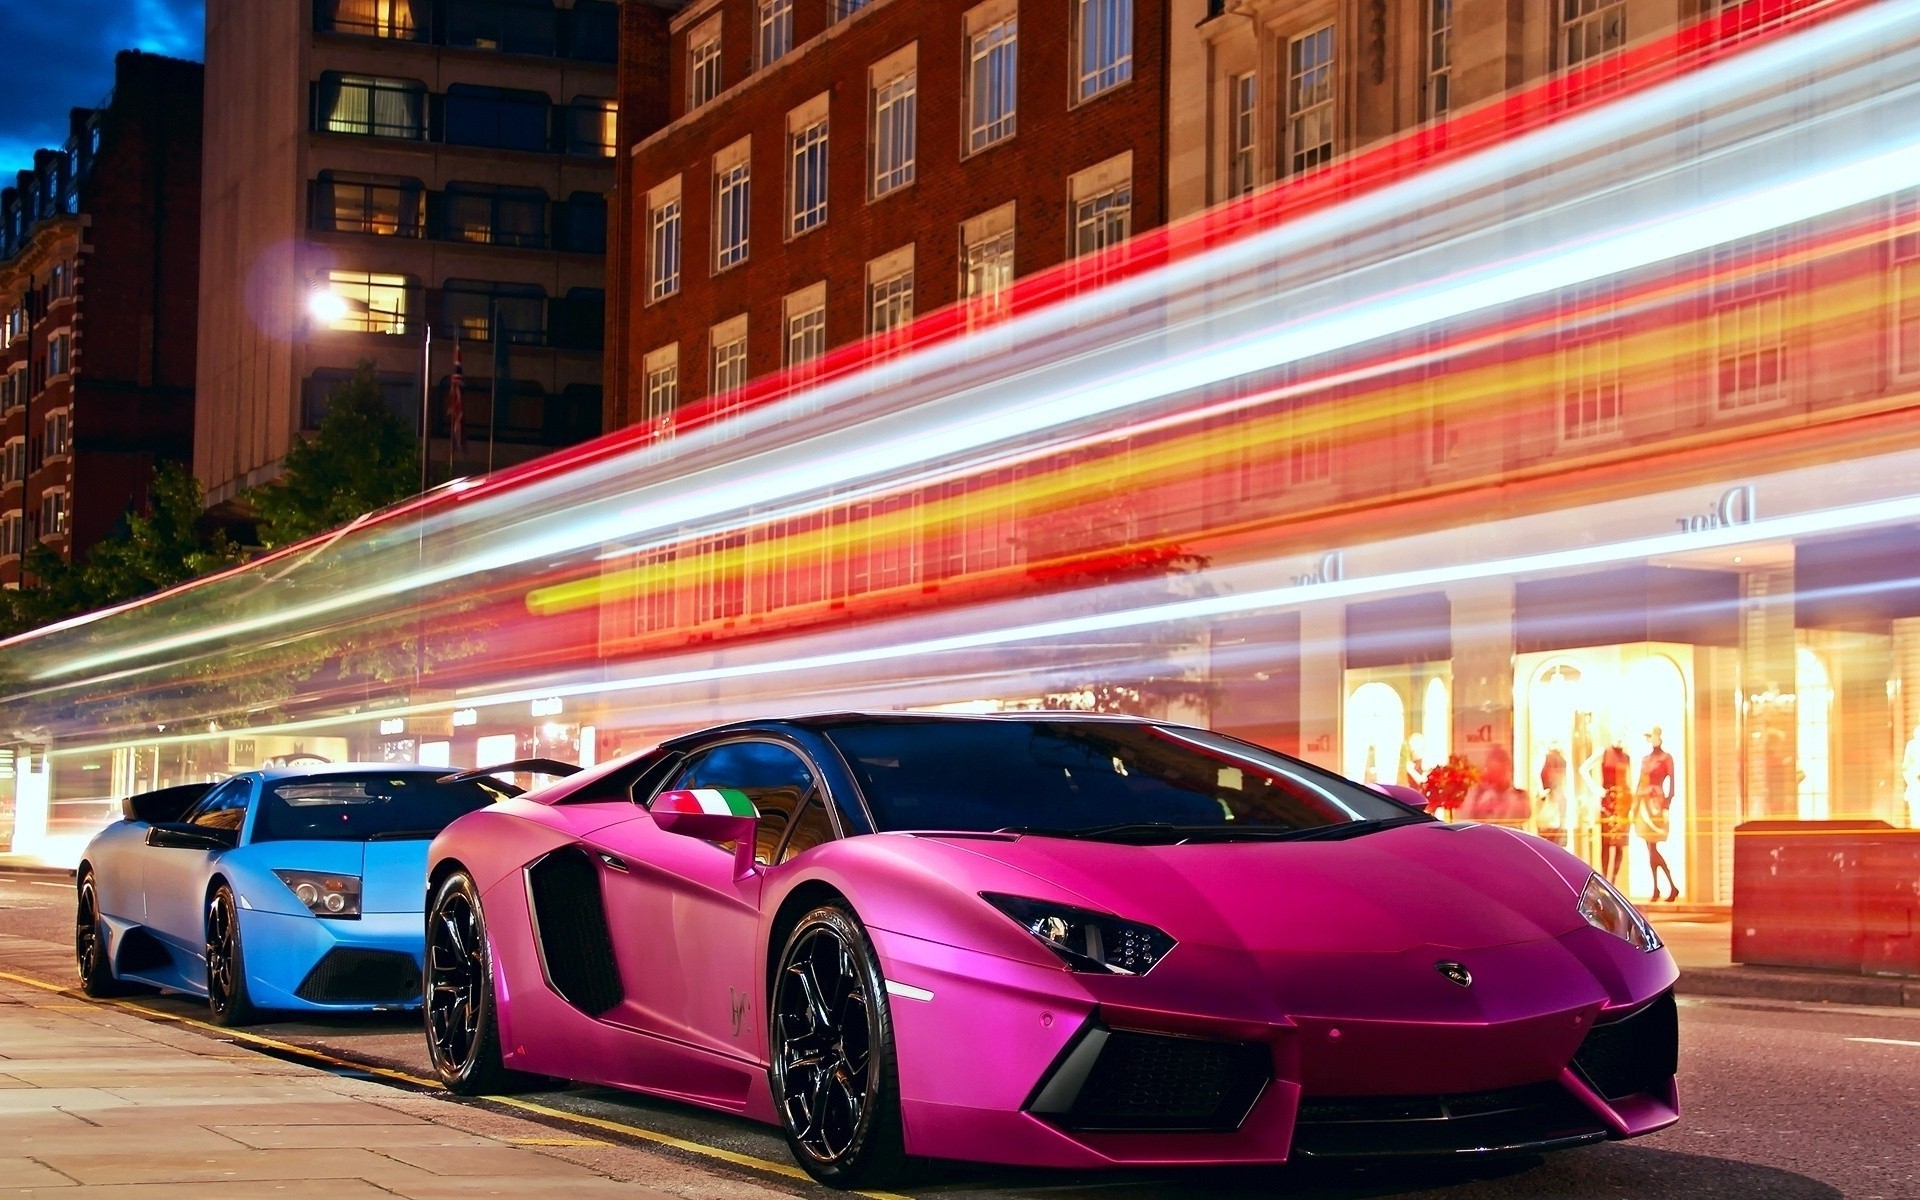 1920x1080 Lamborghini Sesto Elemento Crystal City Car 2014 Pink Neon Design  By